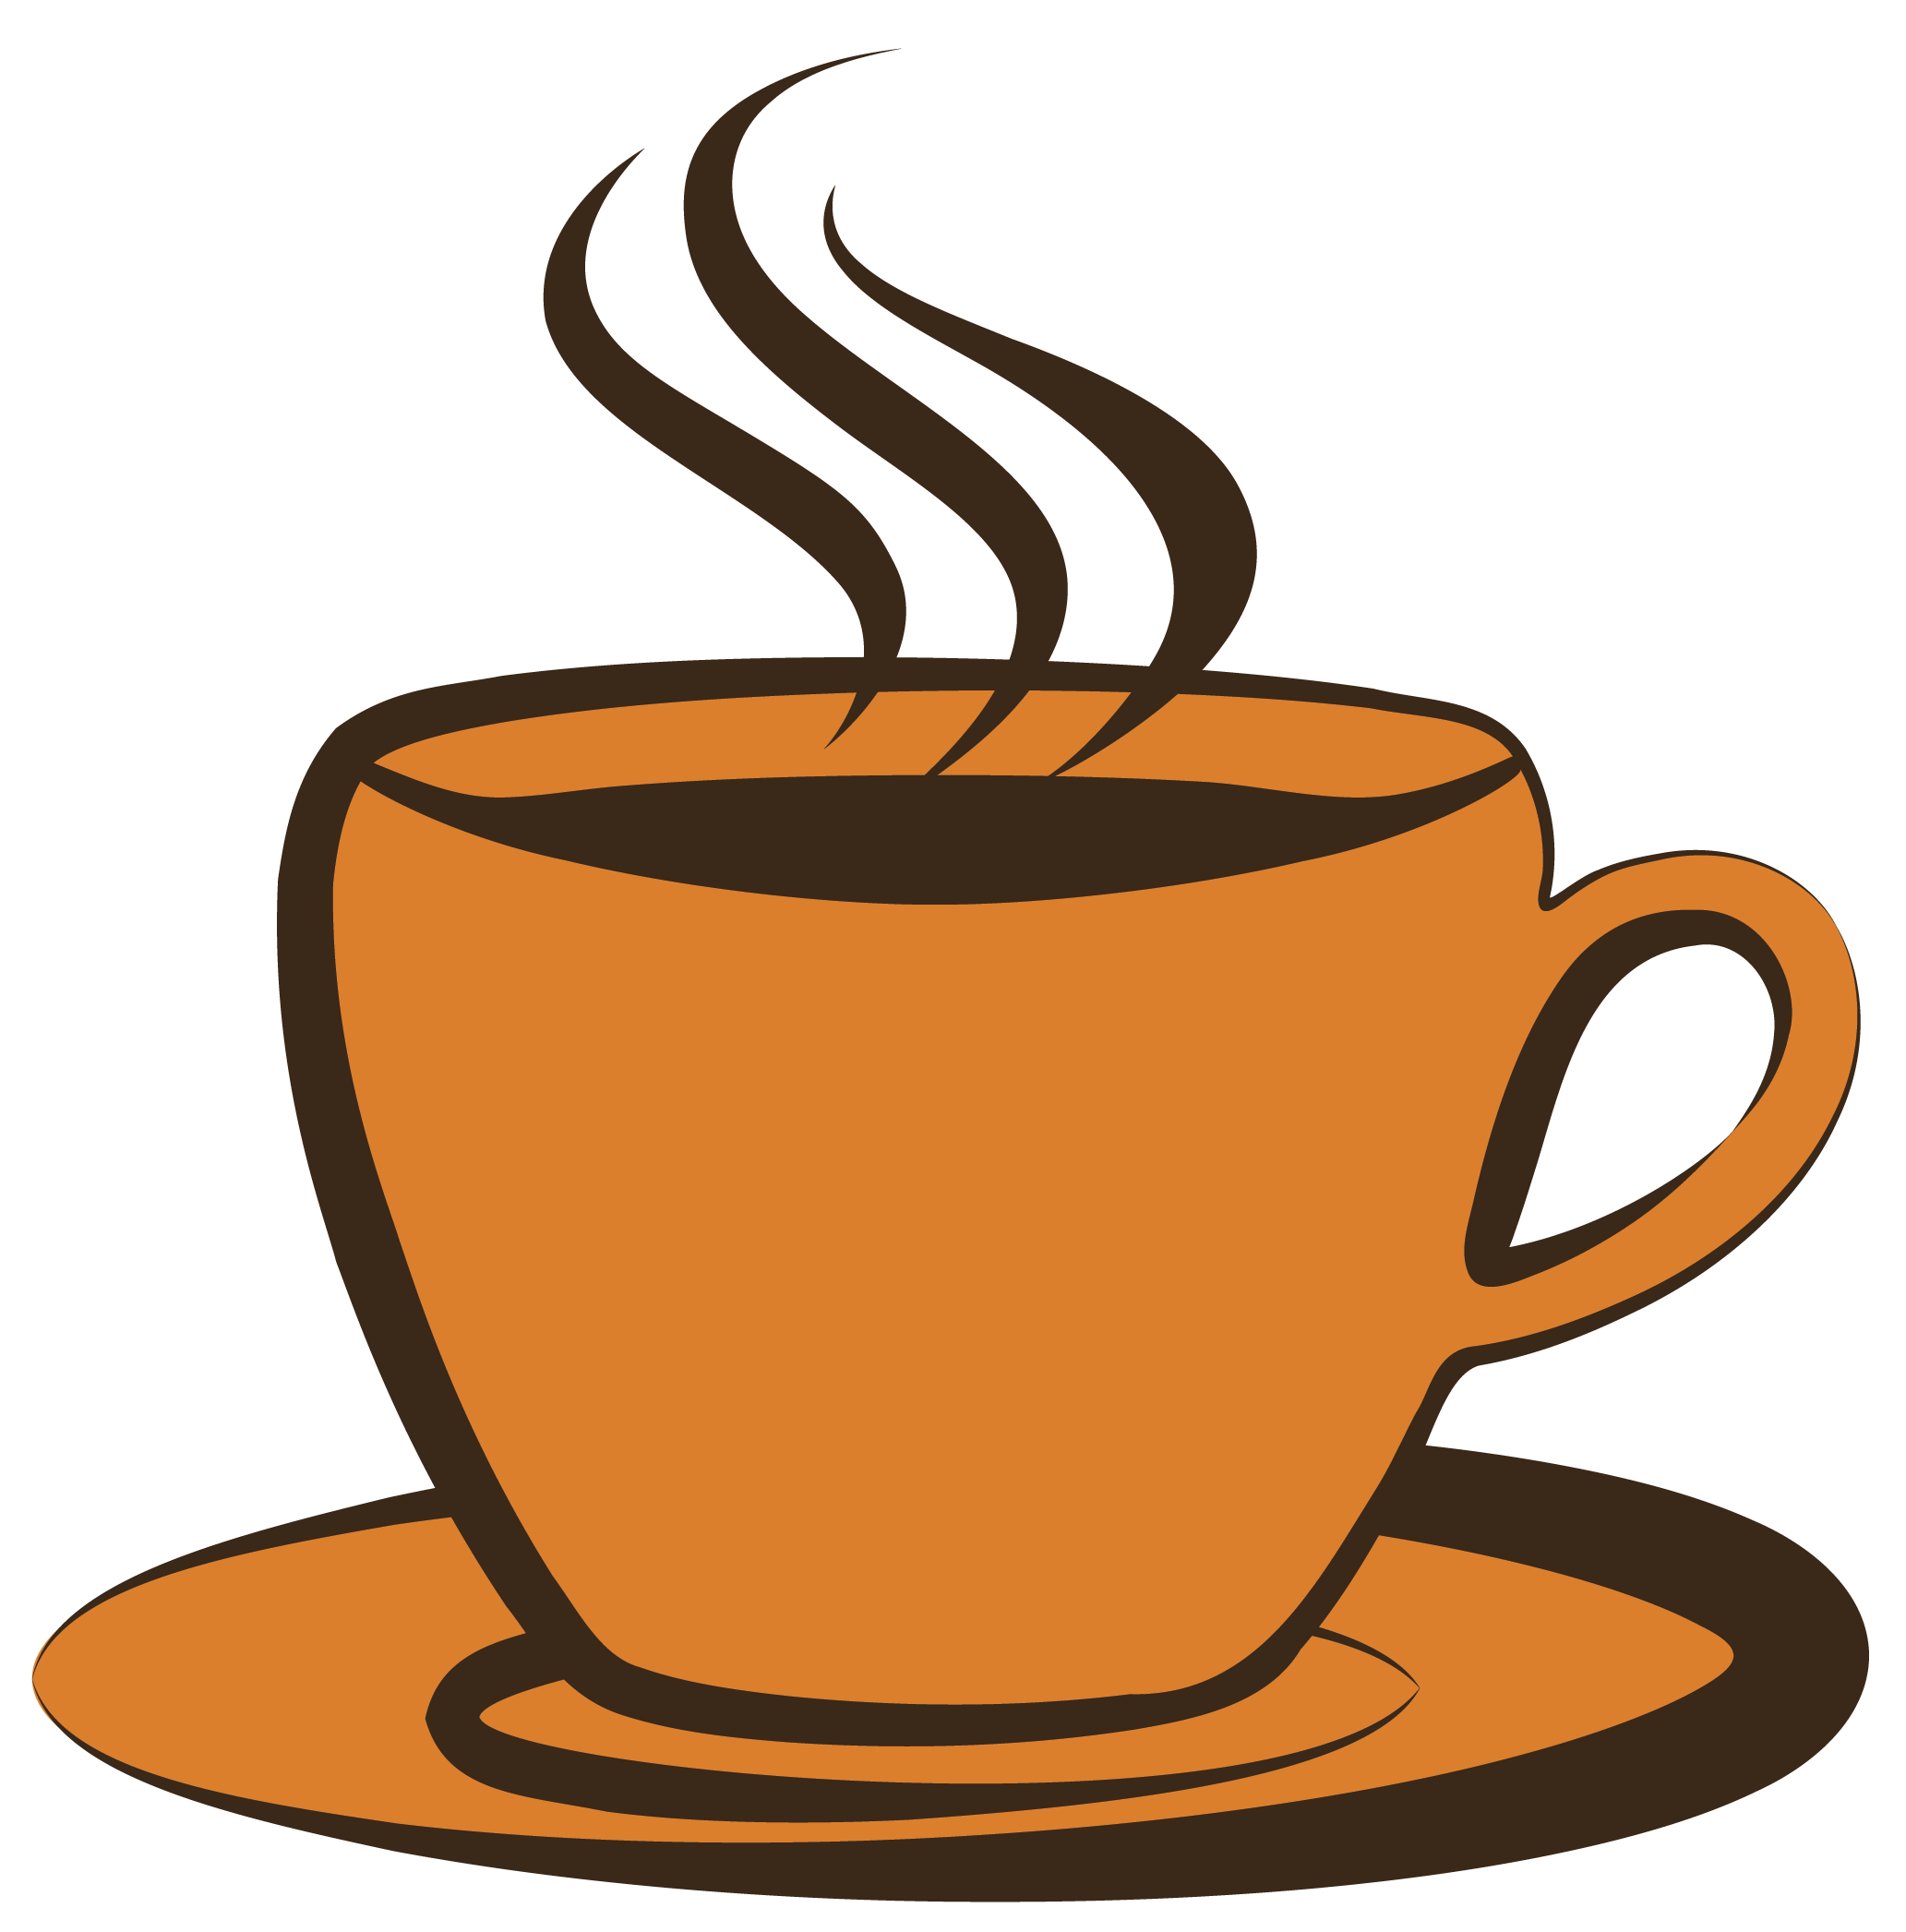 coffee cup clipart cafe